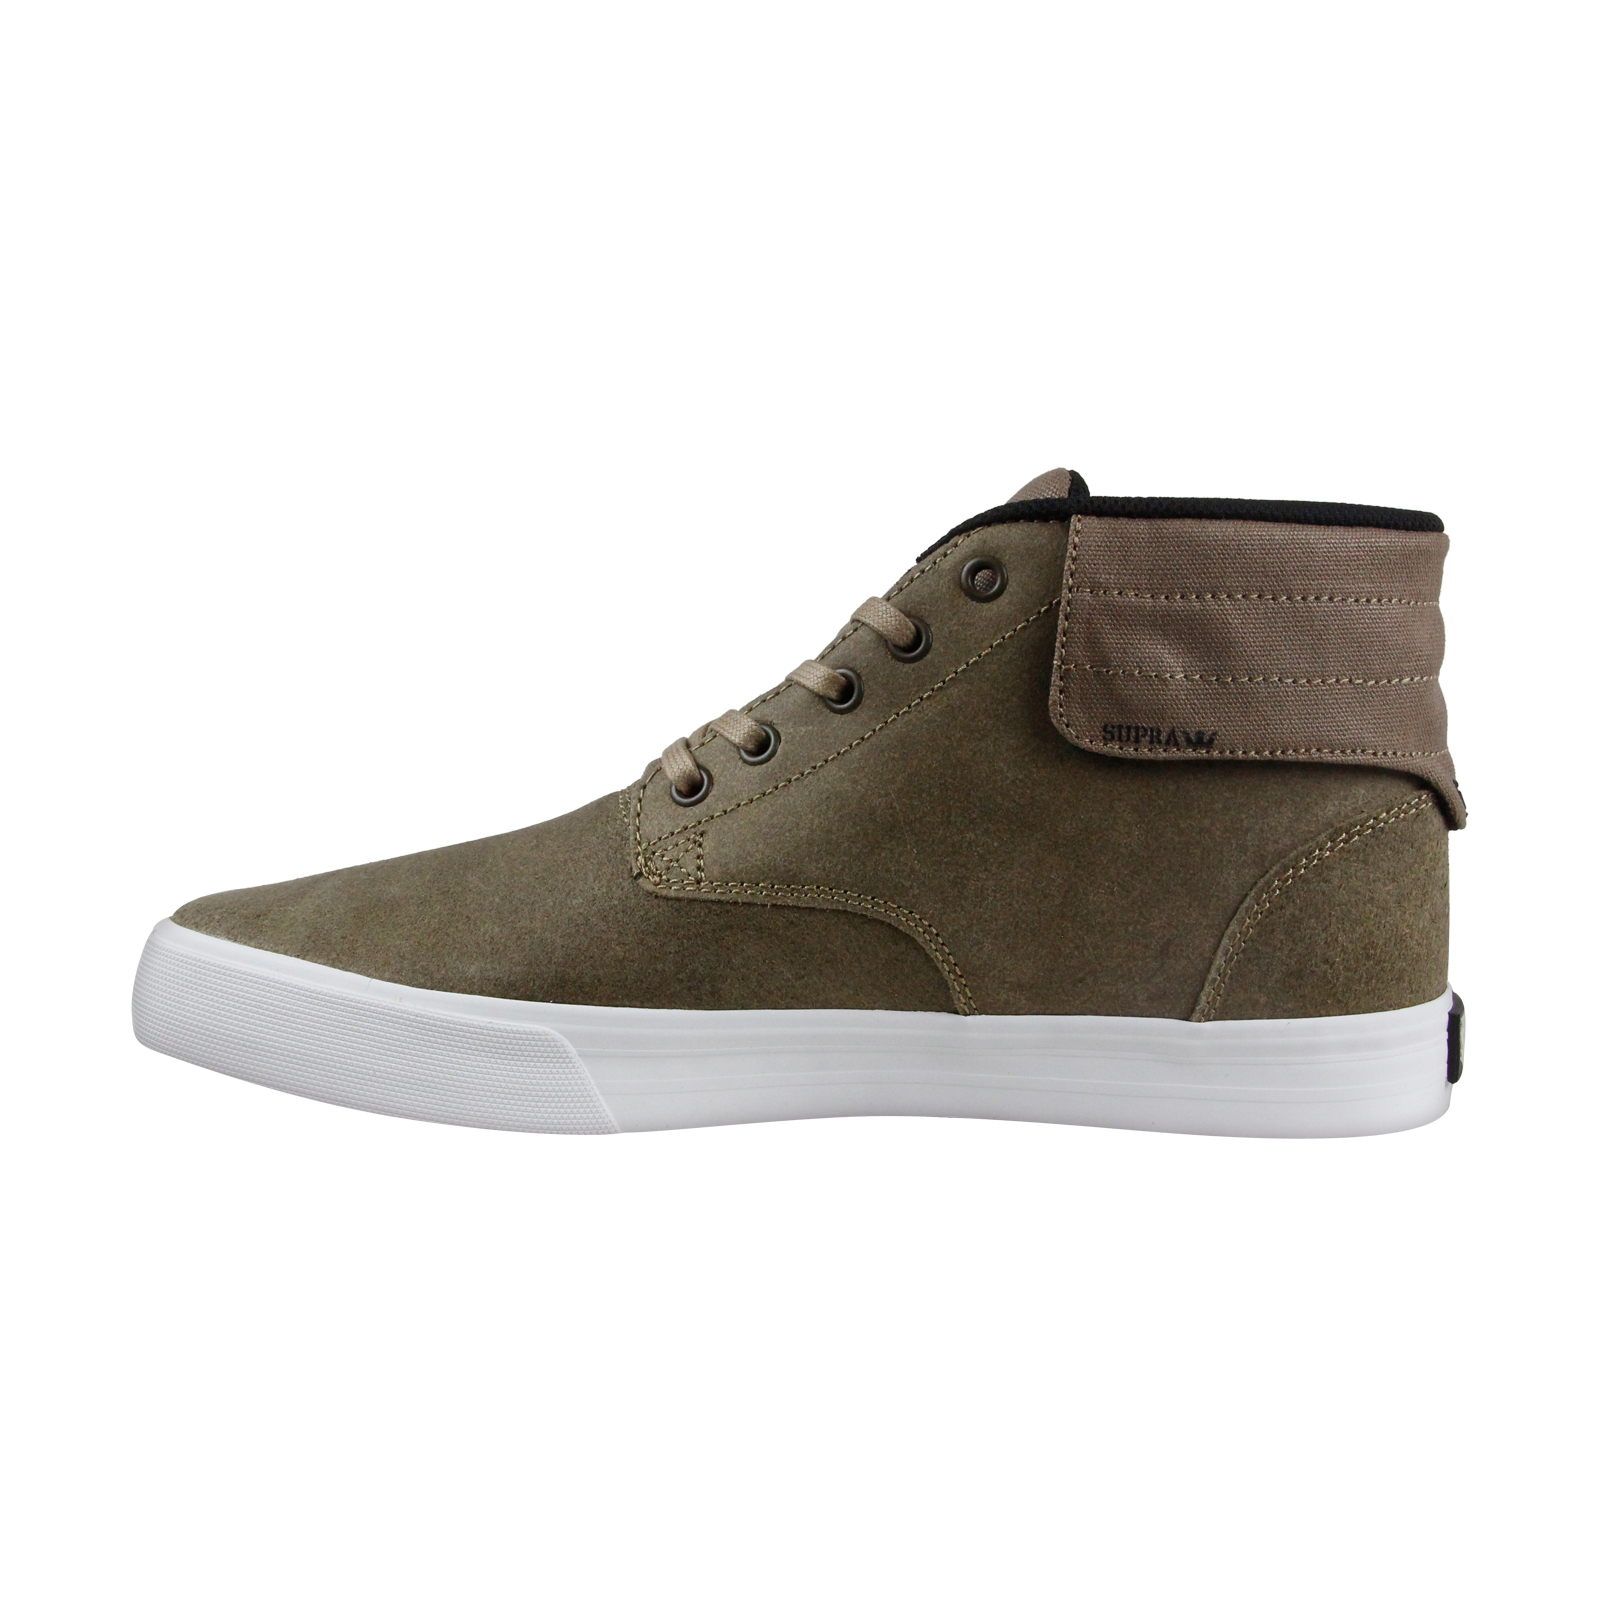 Supra-Passion-Mens-Green-Leather-High-Top-Lace-Up-Sneakers-Shoes